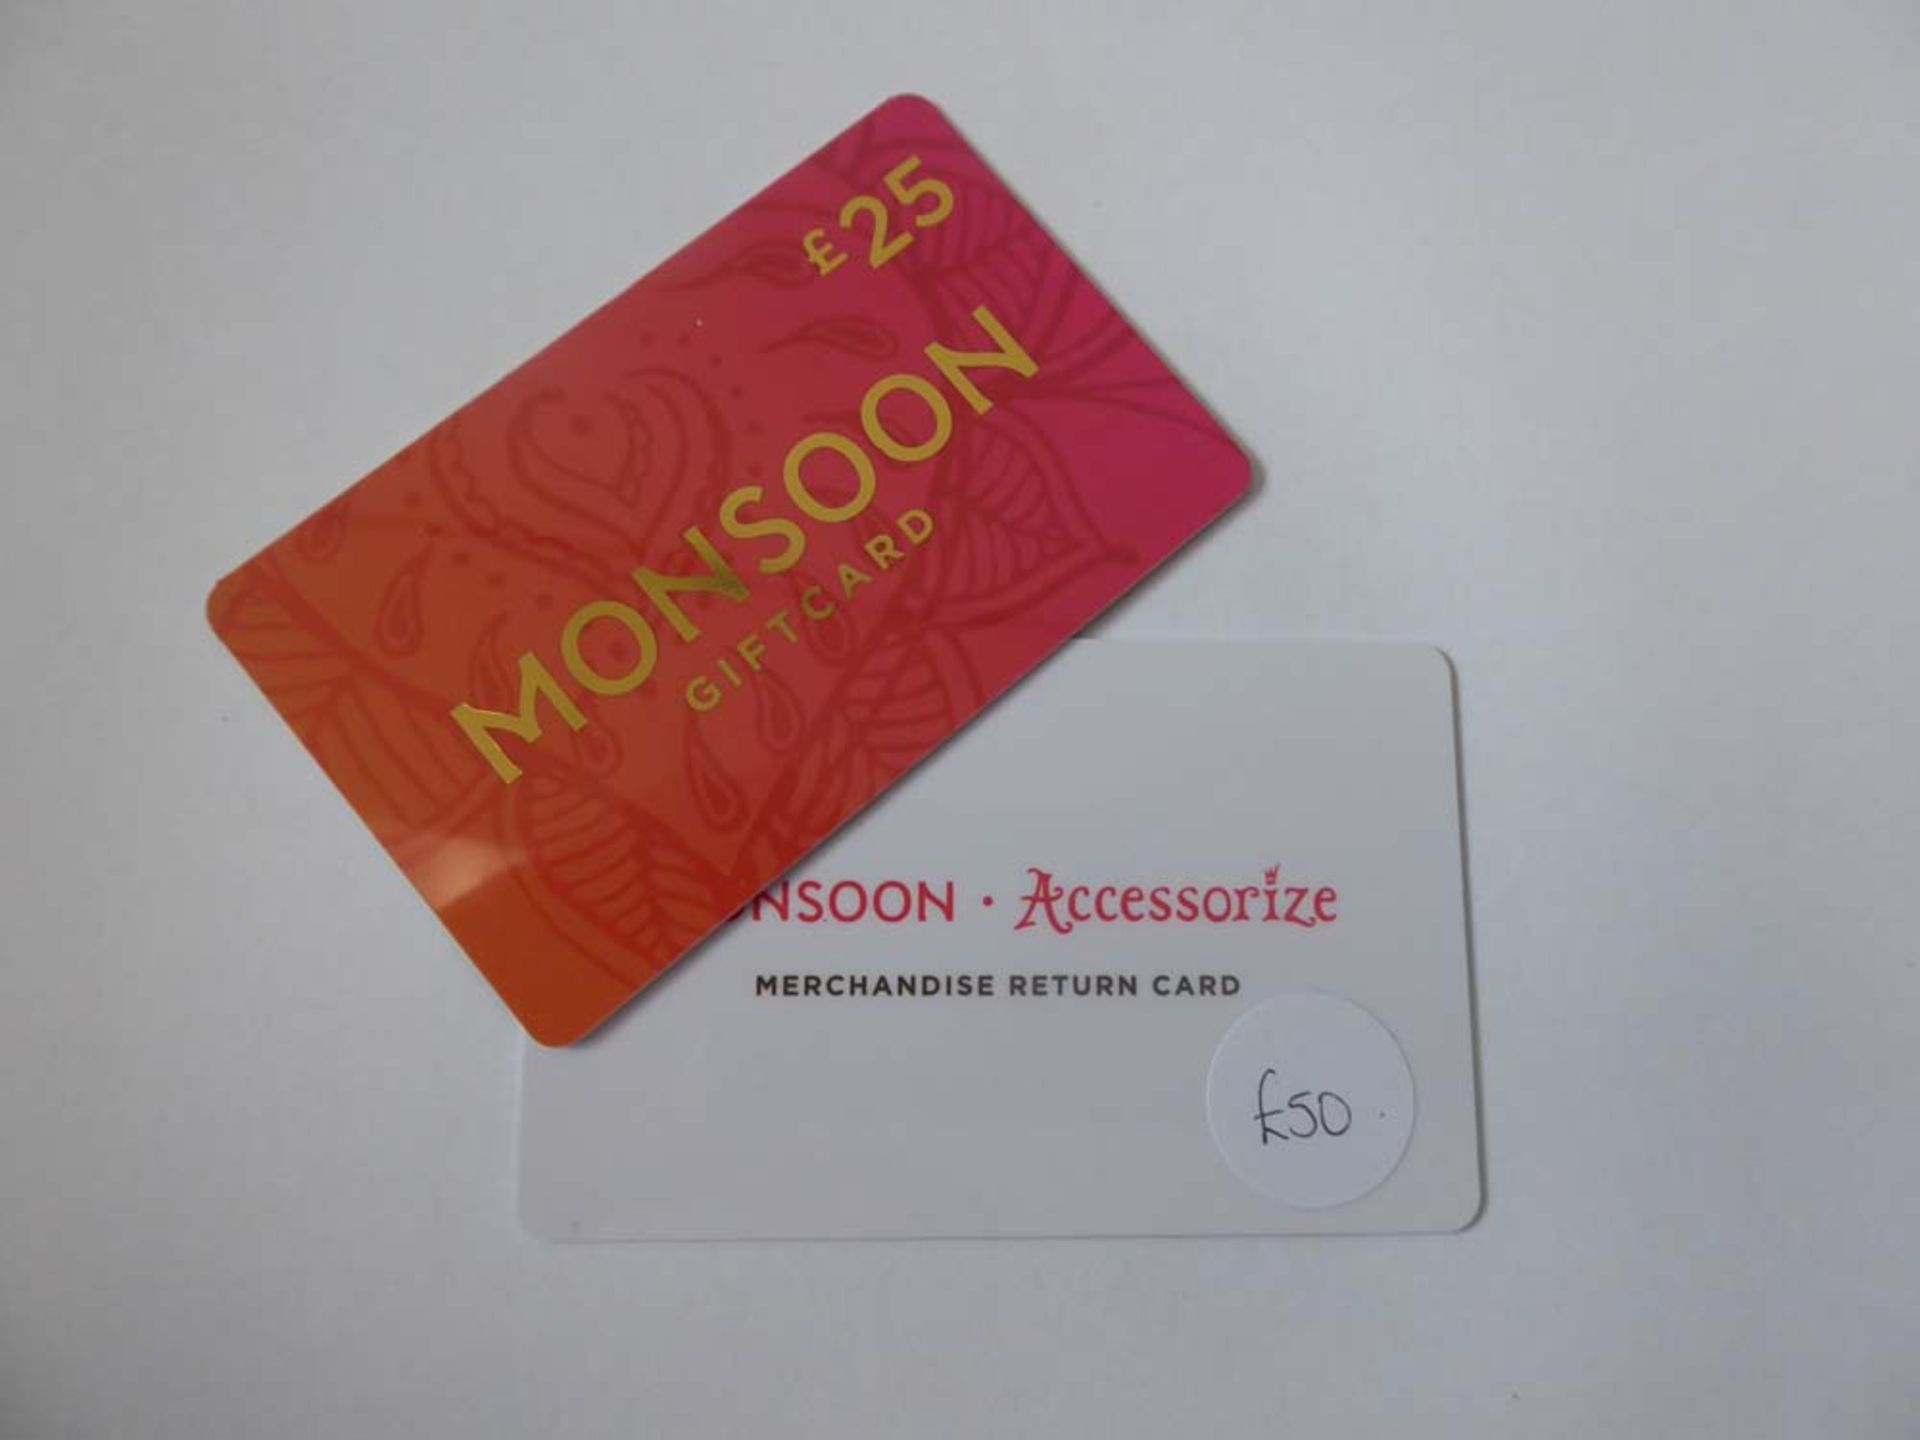 Monsoon (x2) - Total face value £75